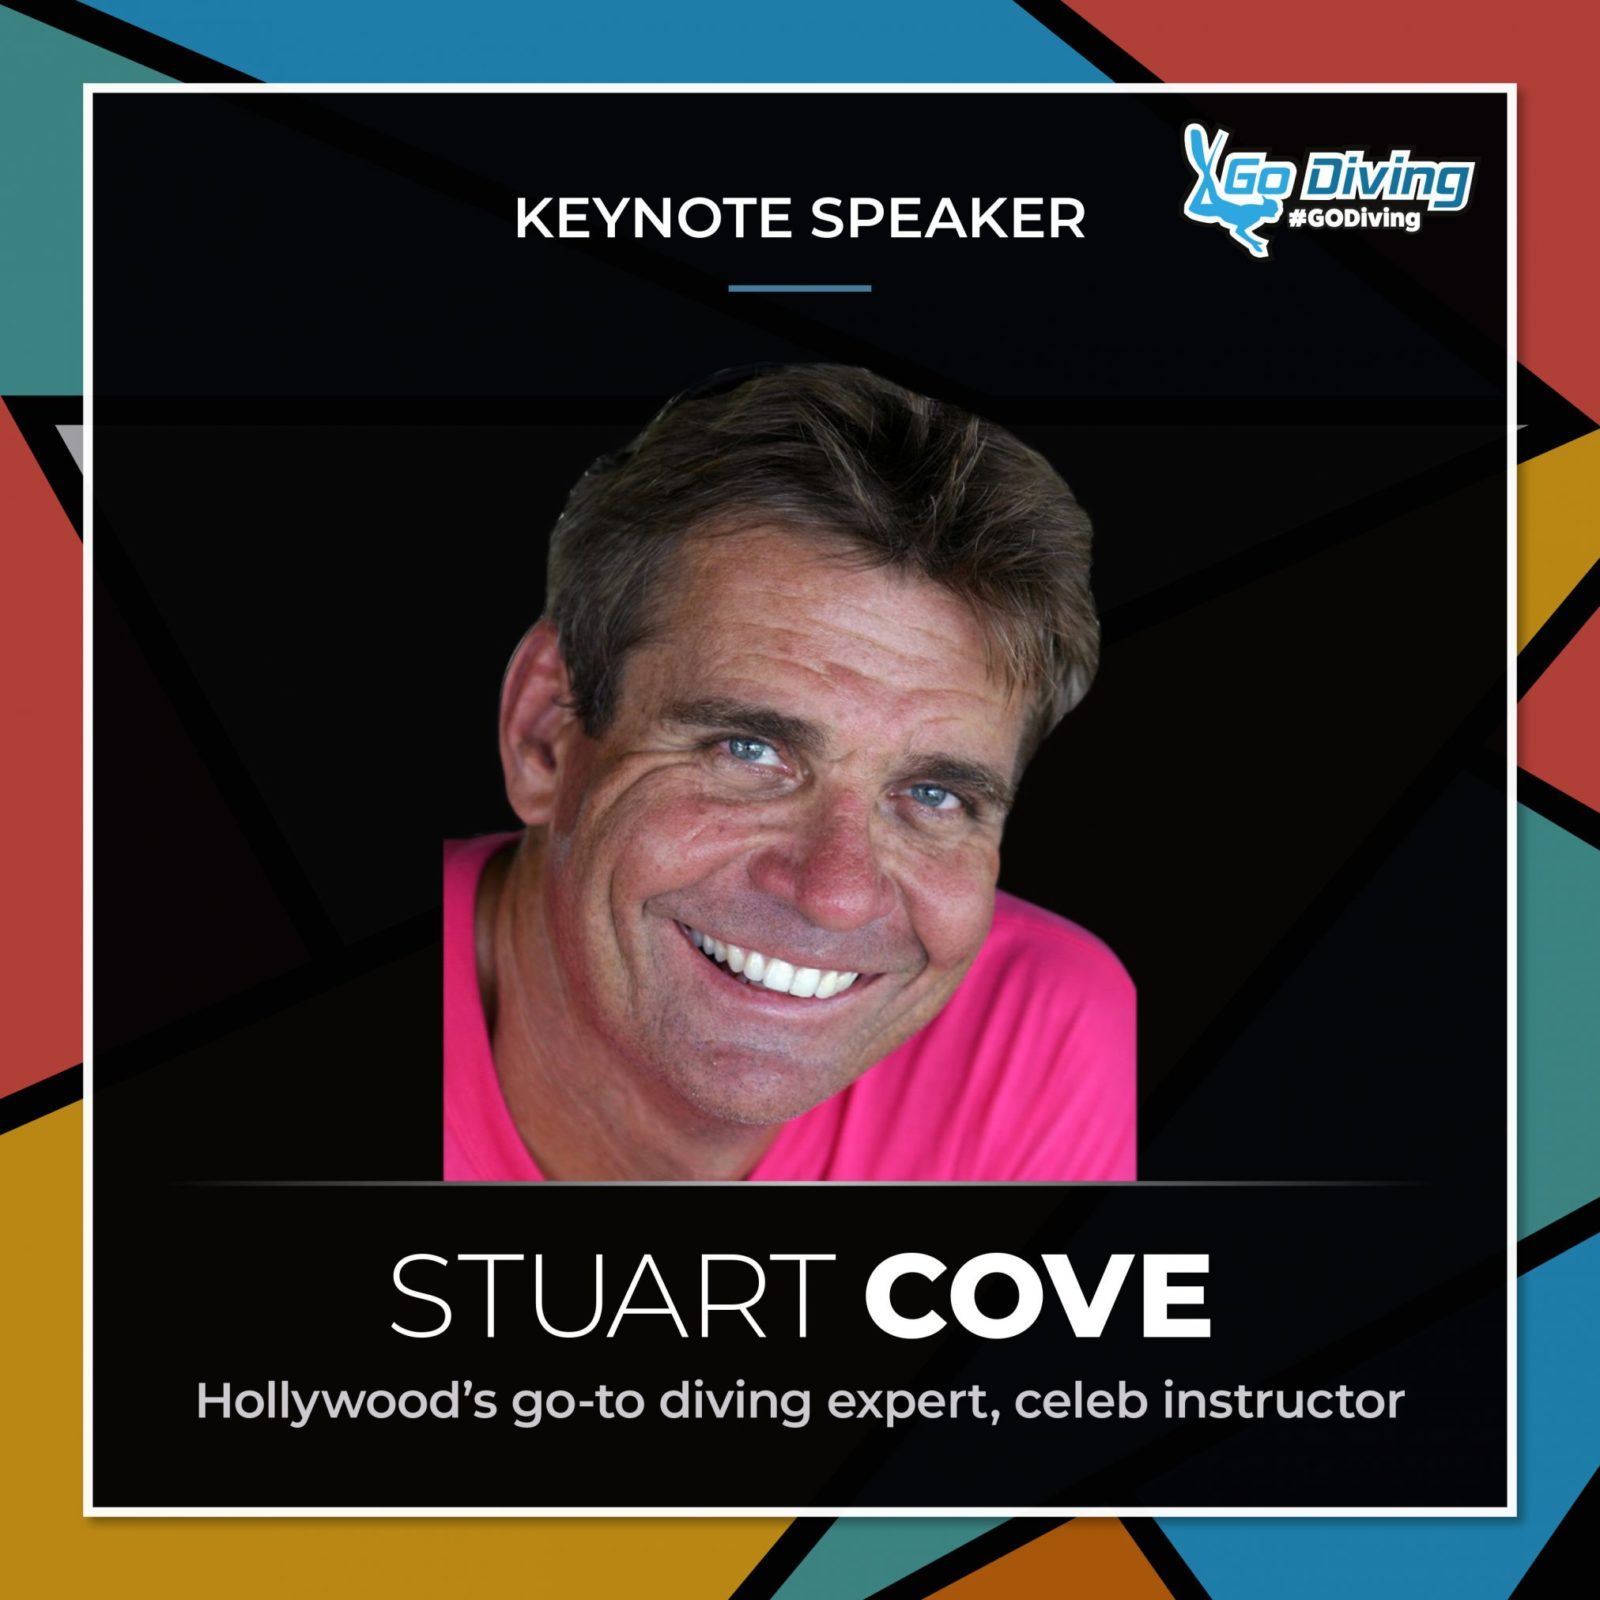 GO Diving Show speaker profile - Stuart Cove 6